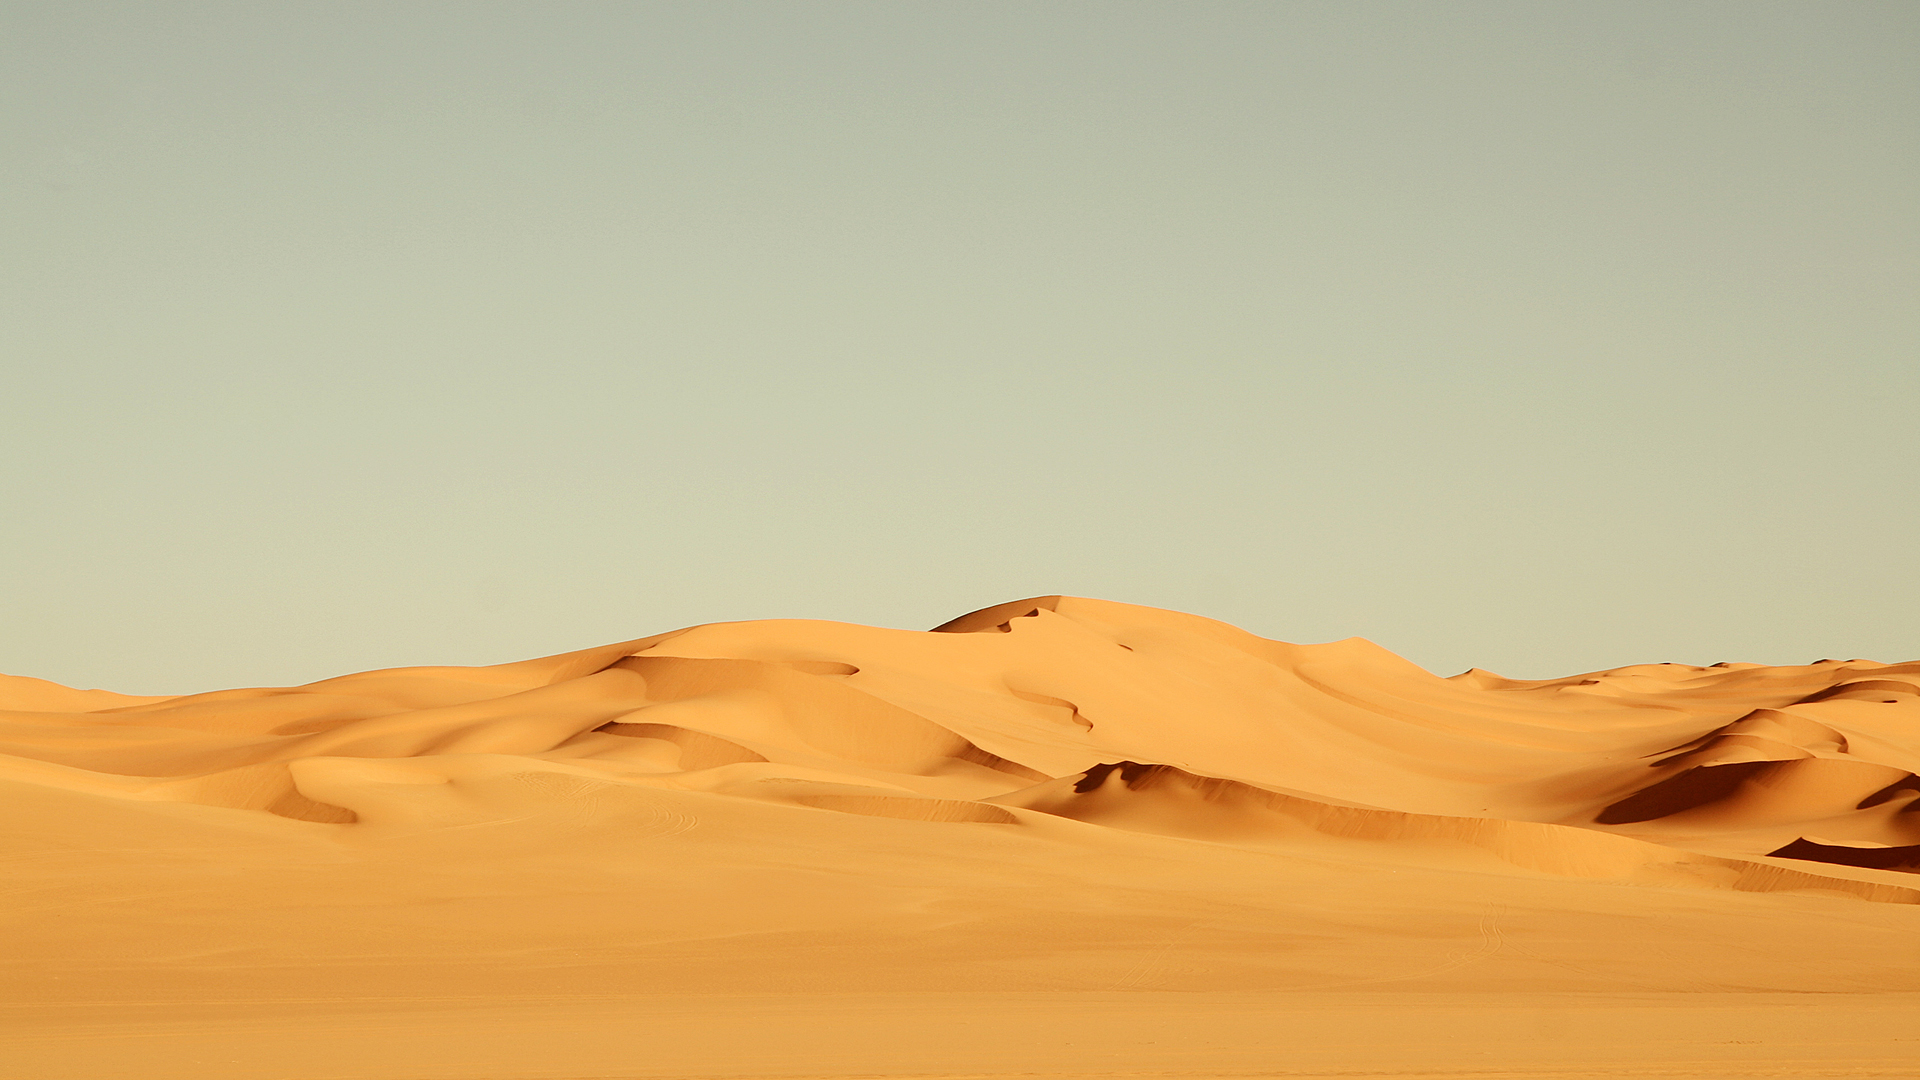 Desert Wallpaper Background HD